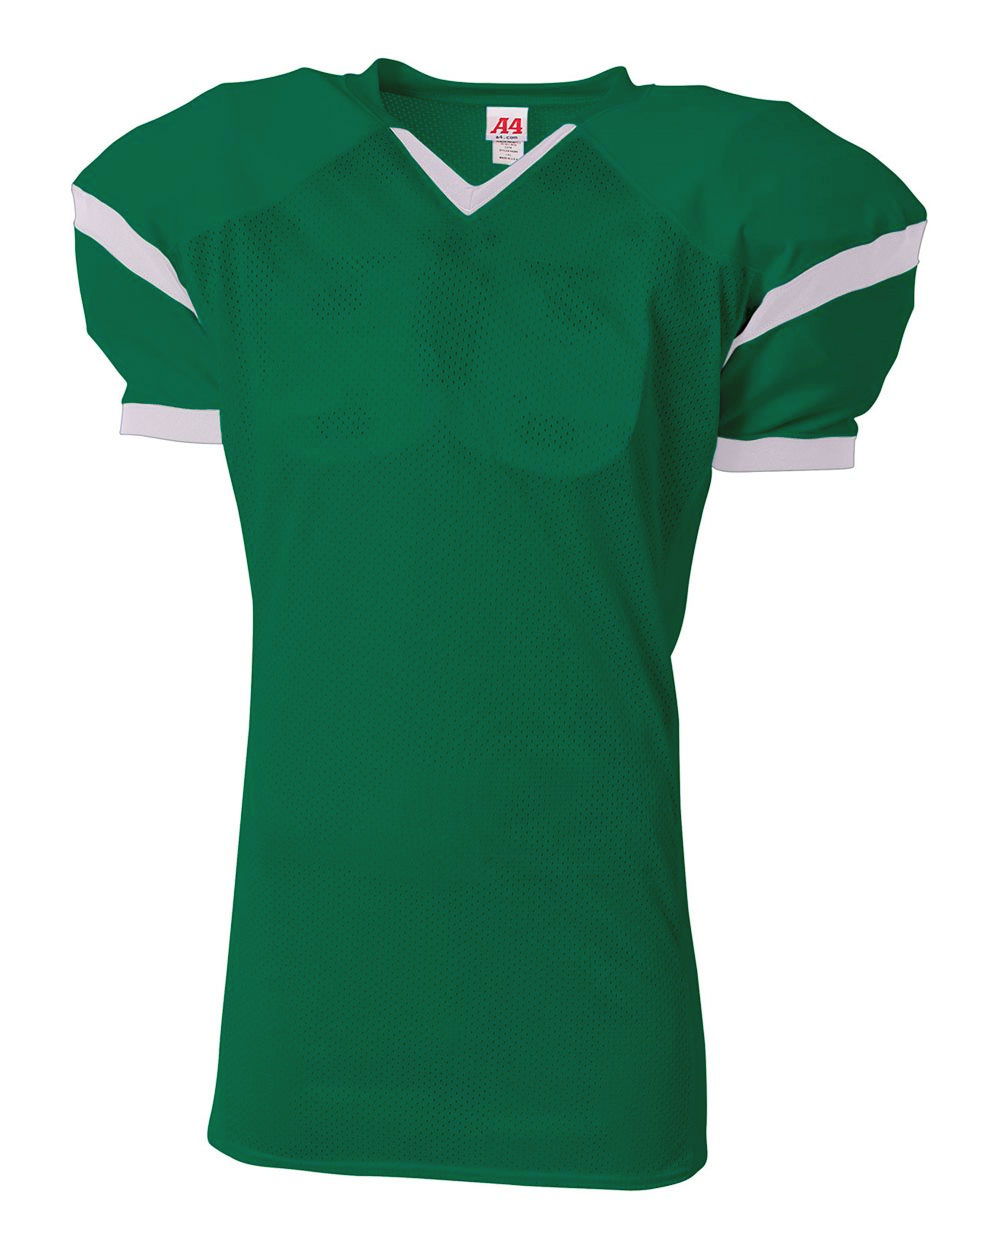 Youth Rollout Football Jersey